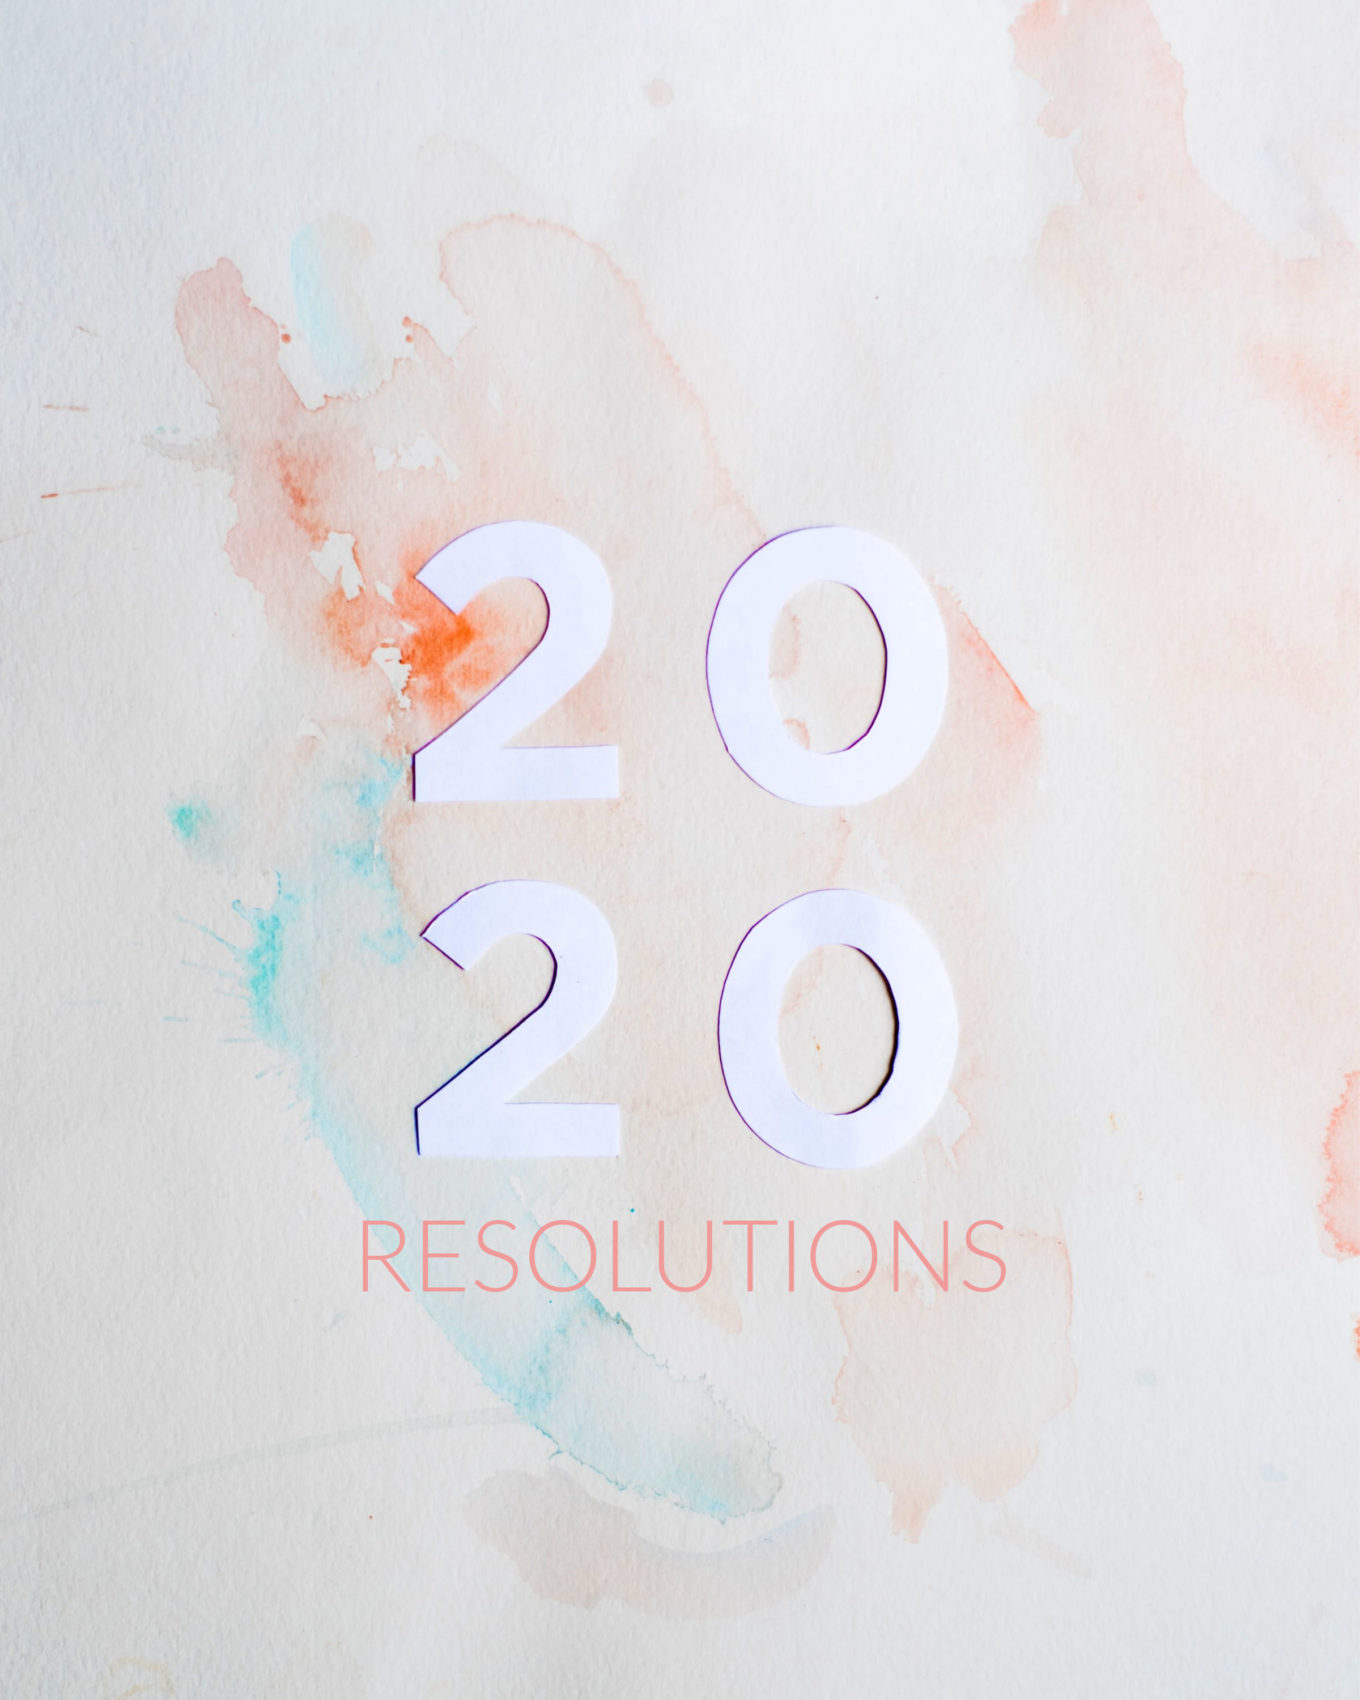 2020 resolutions